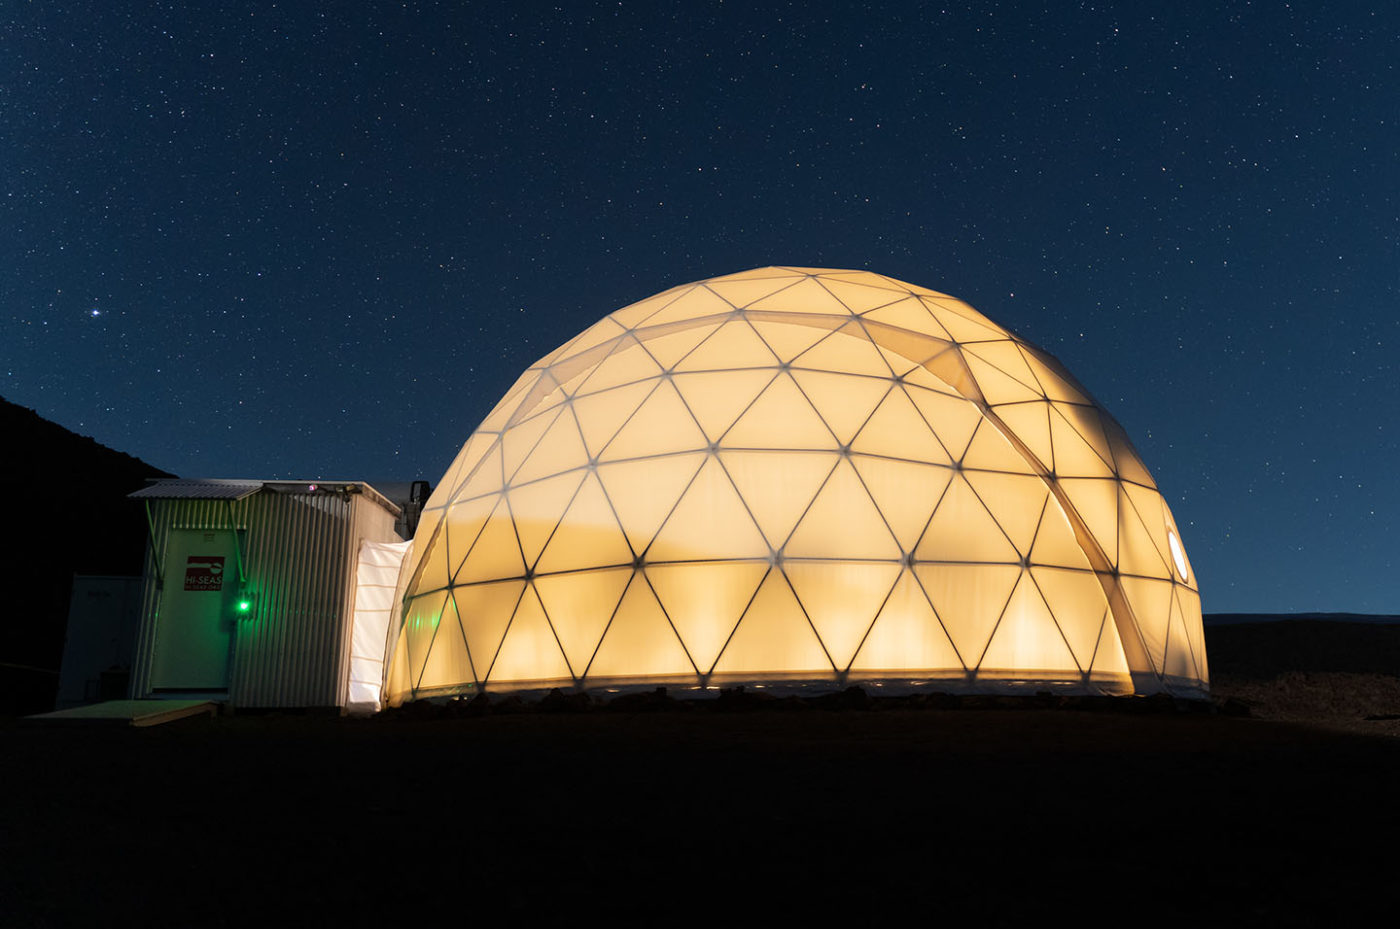 A photograph of a large dome glowing at night.